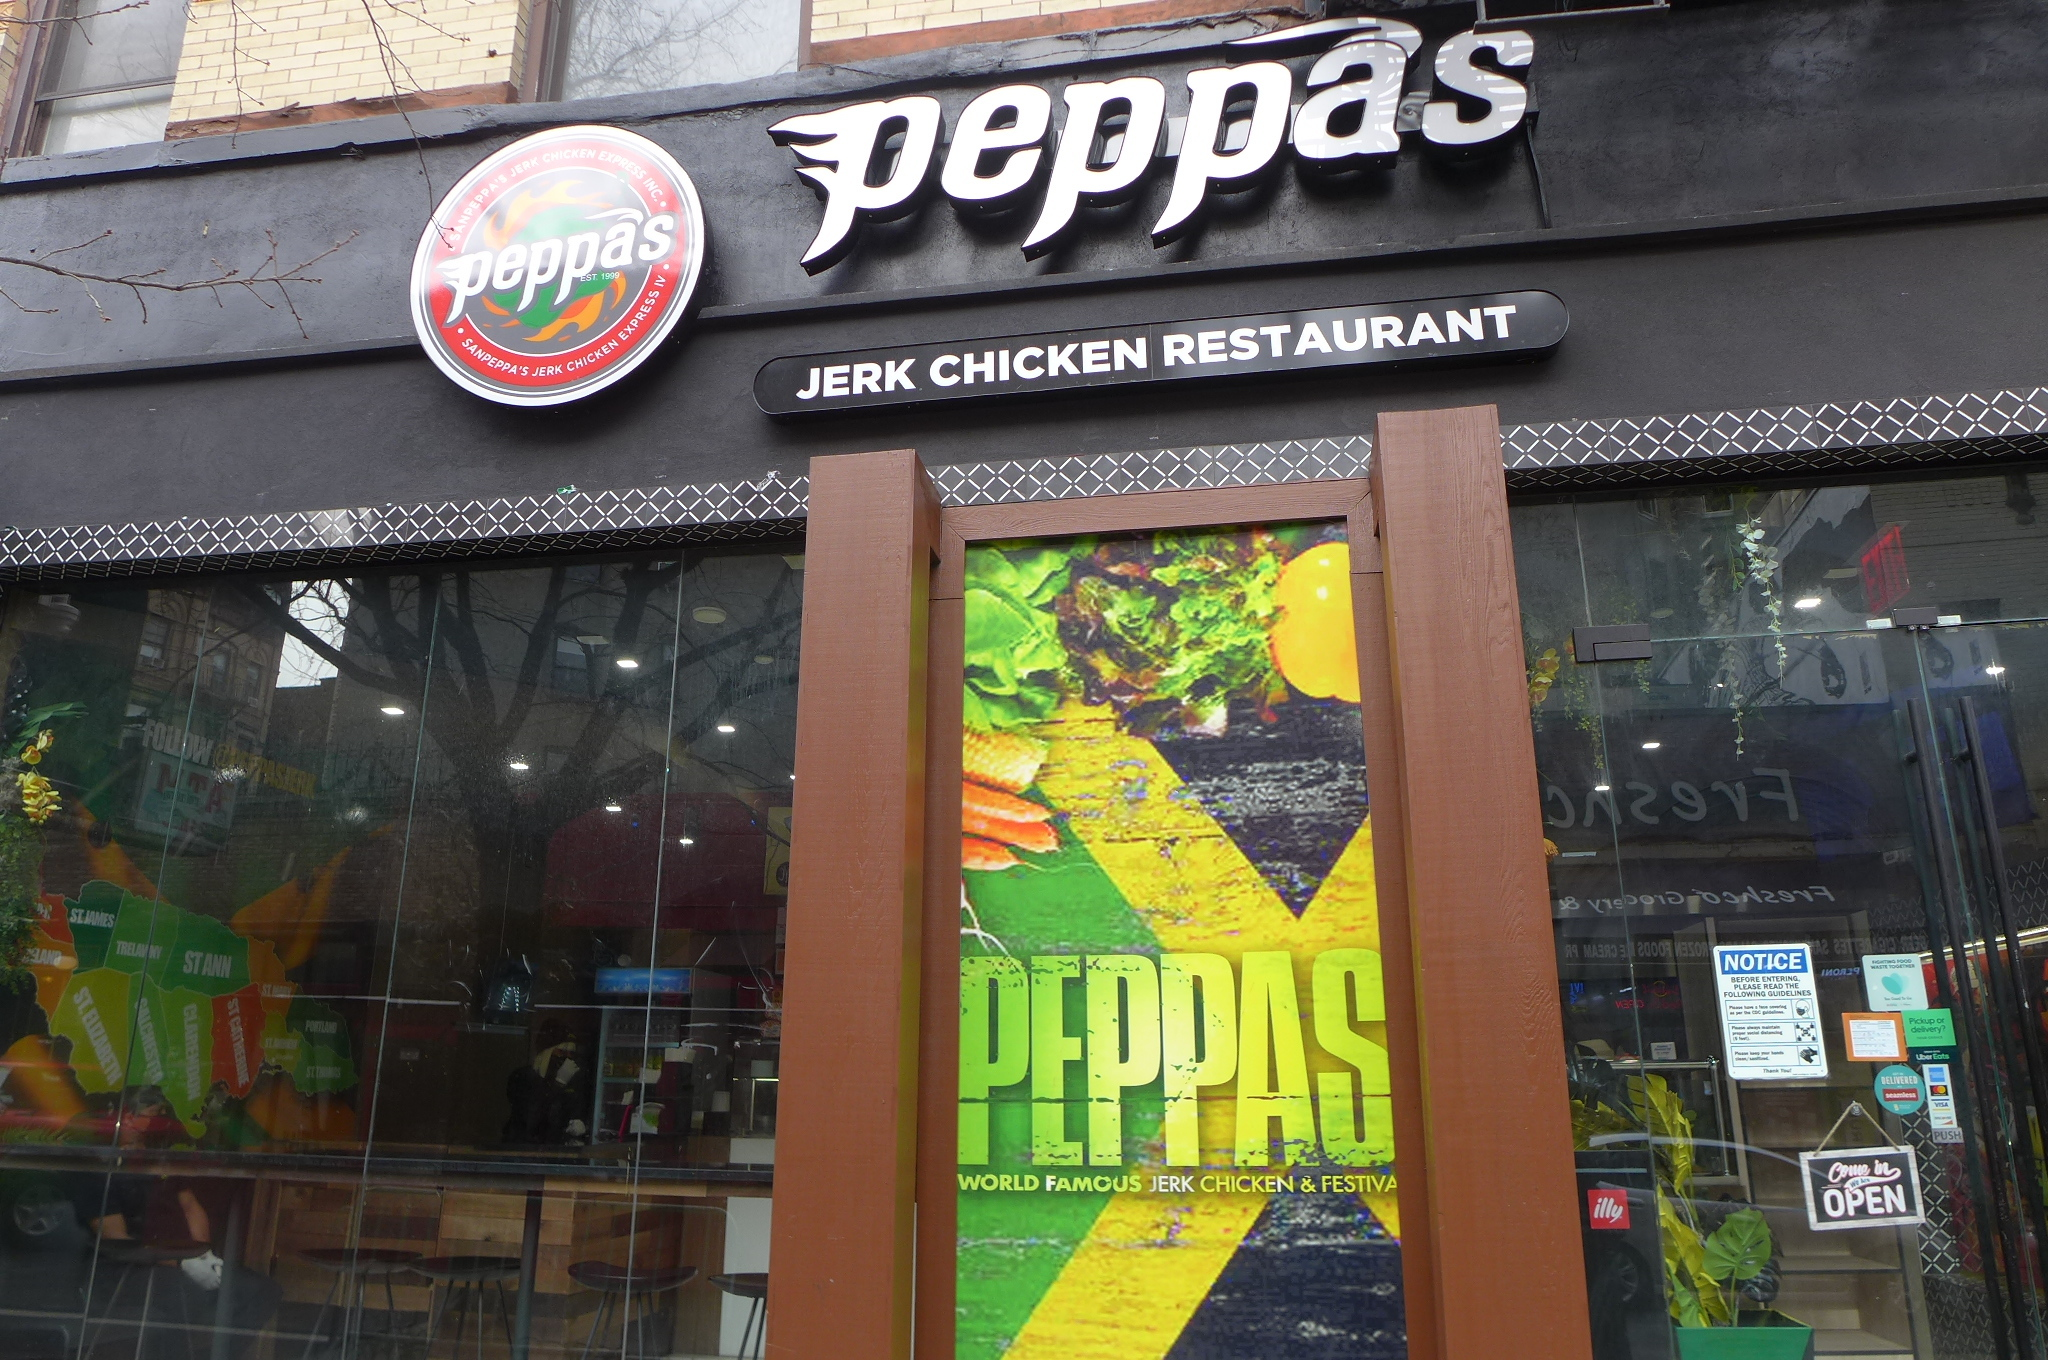 A gleaming storefront with Peppas in lower case, in the colors of black, yellow, and green.